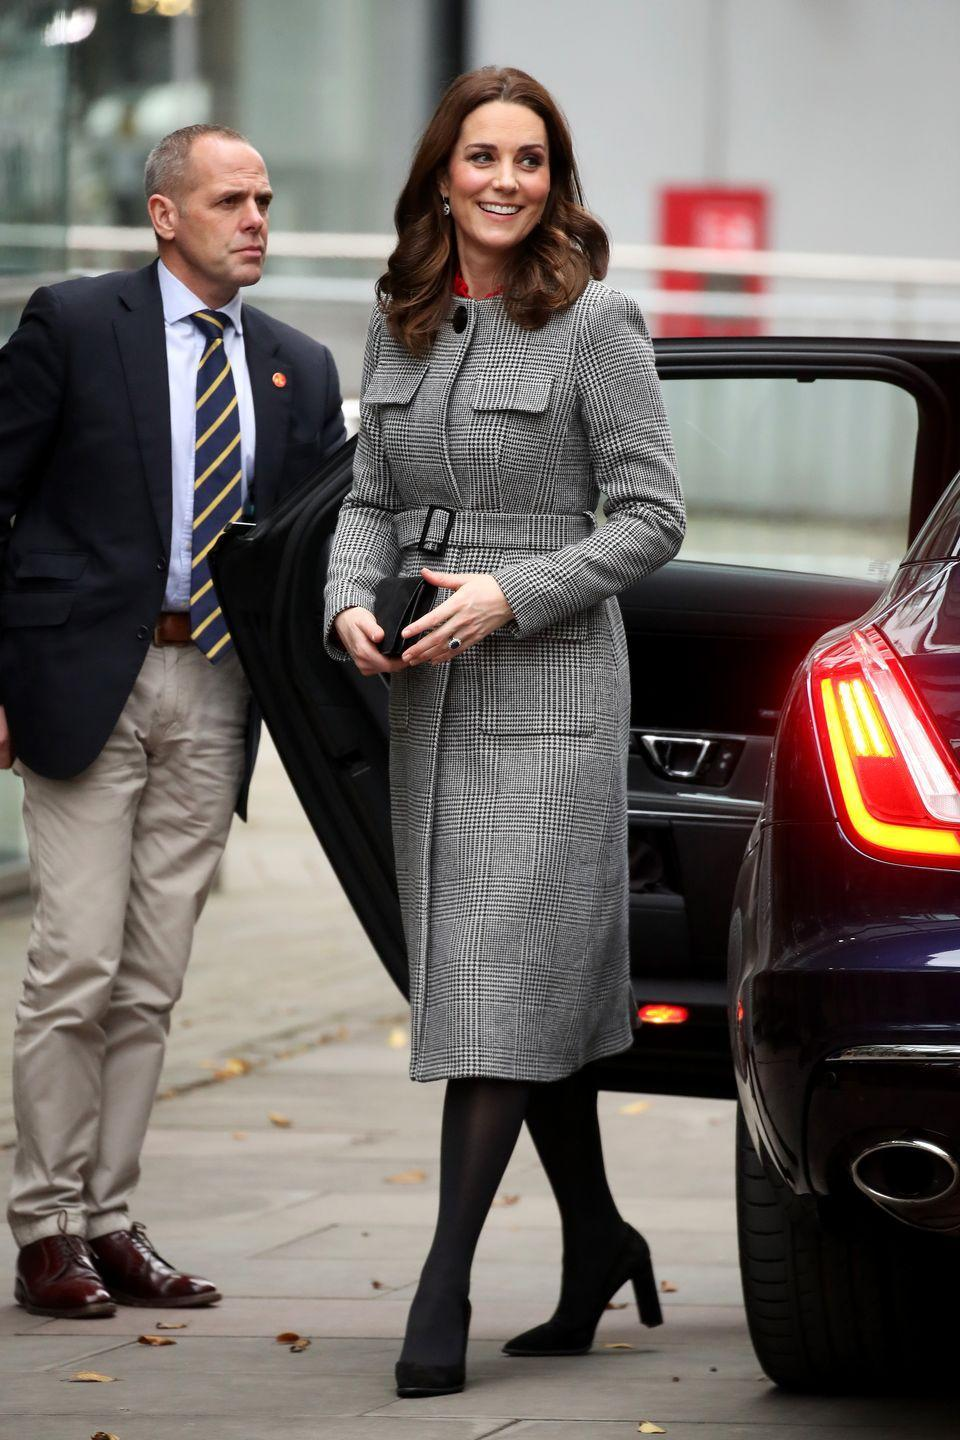 """<p>Kate has even worn plaid as maternity clothes: in December 2017, <a href=""""https://www.townandcountrymag.com/society/tradition/g12167293/kate-middleton-best-maternity-outfits/?slide=26"""" rel=""""nofollow noopener"""" target=""""_blank"""" data-ylk=""""slk:the Duchess stepped out"""" class=""""link rapid-noclick-resp"""">the Duchess stepped out</a> in this gray checkered coat by L.K. Bennet. She was pregnant with Prince Louis at the time. </p>"""